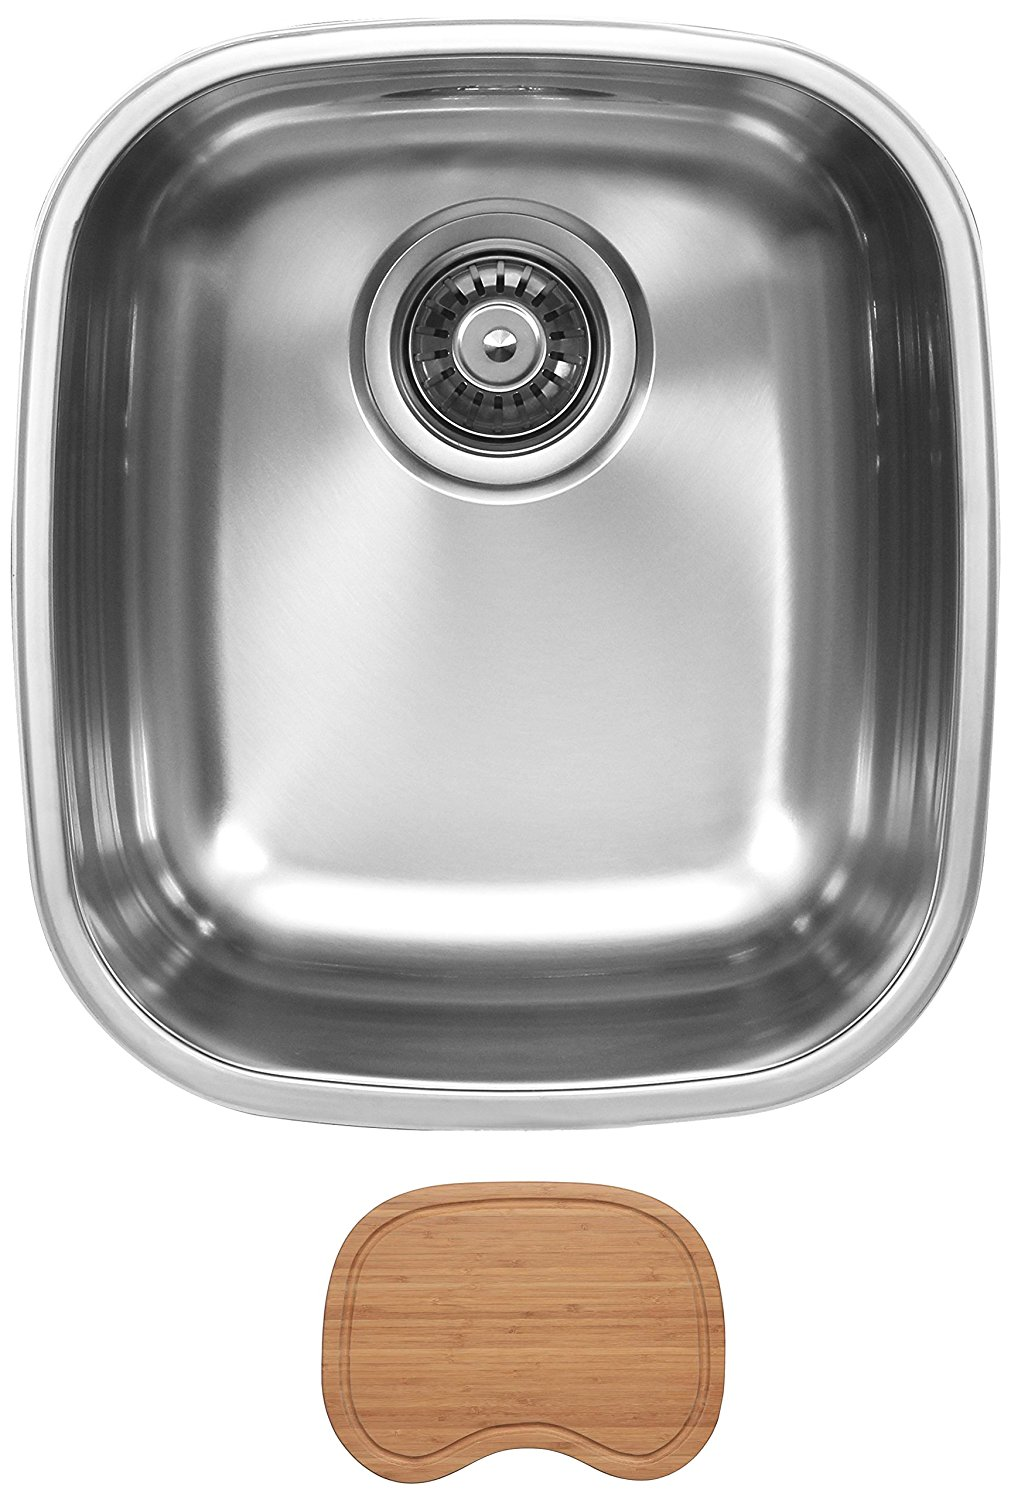 Ukinox D345.8C Undermount Single Bowl Stainless Steel Kitchen Sink With Cutting Board